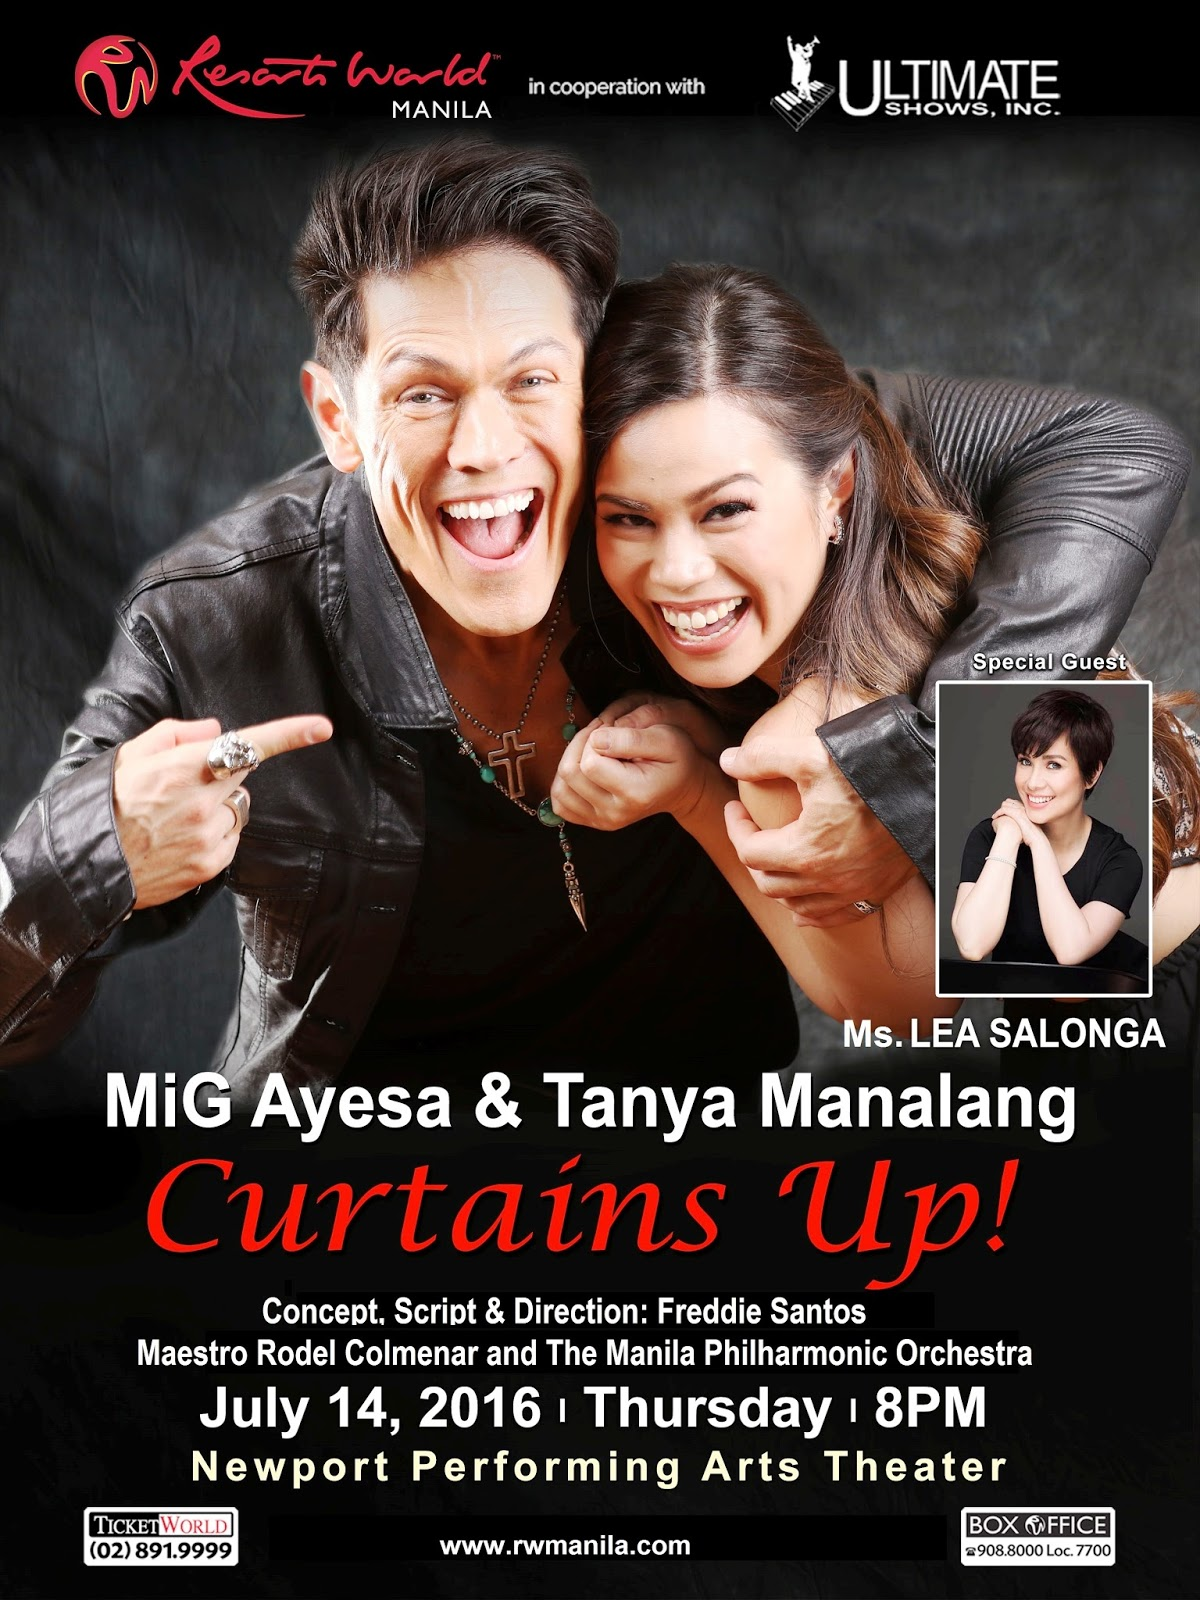 Ayesa First Dates Porno curtains up! featuring the world-class talents ~ star powerhouse